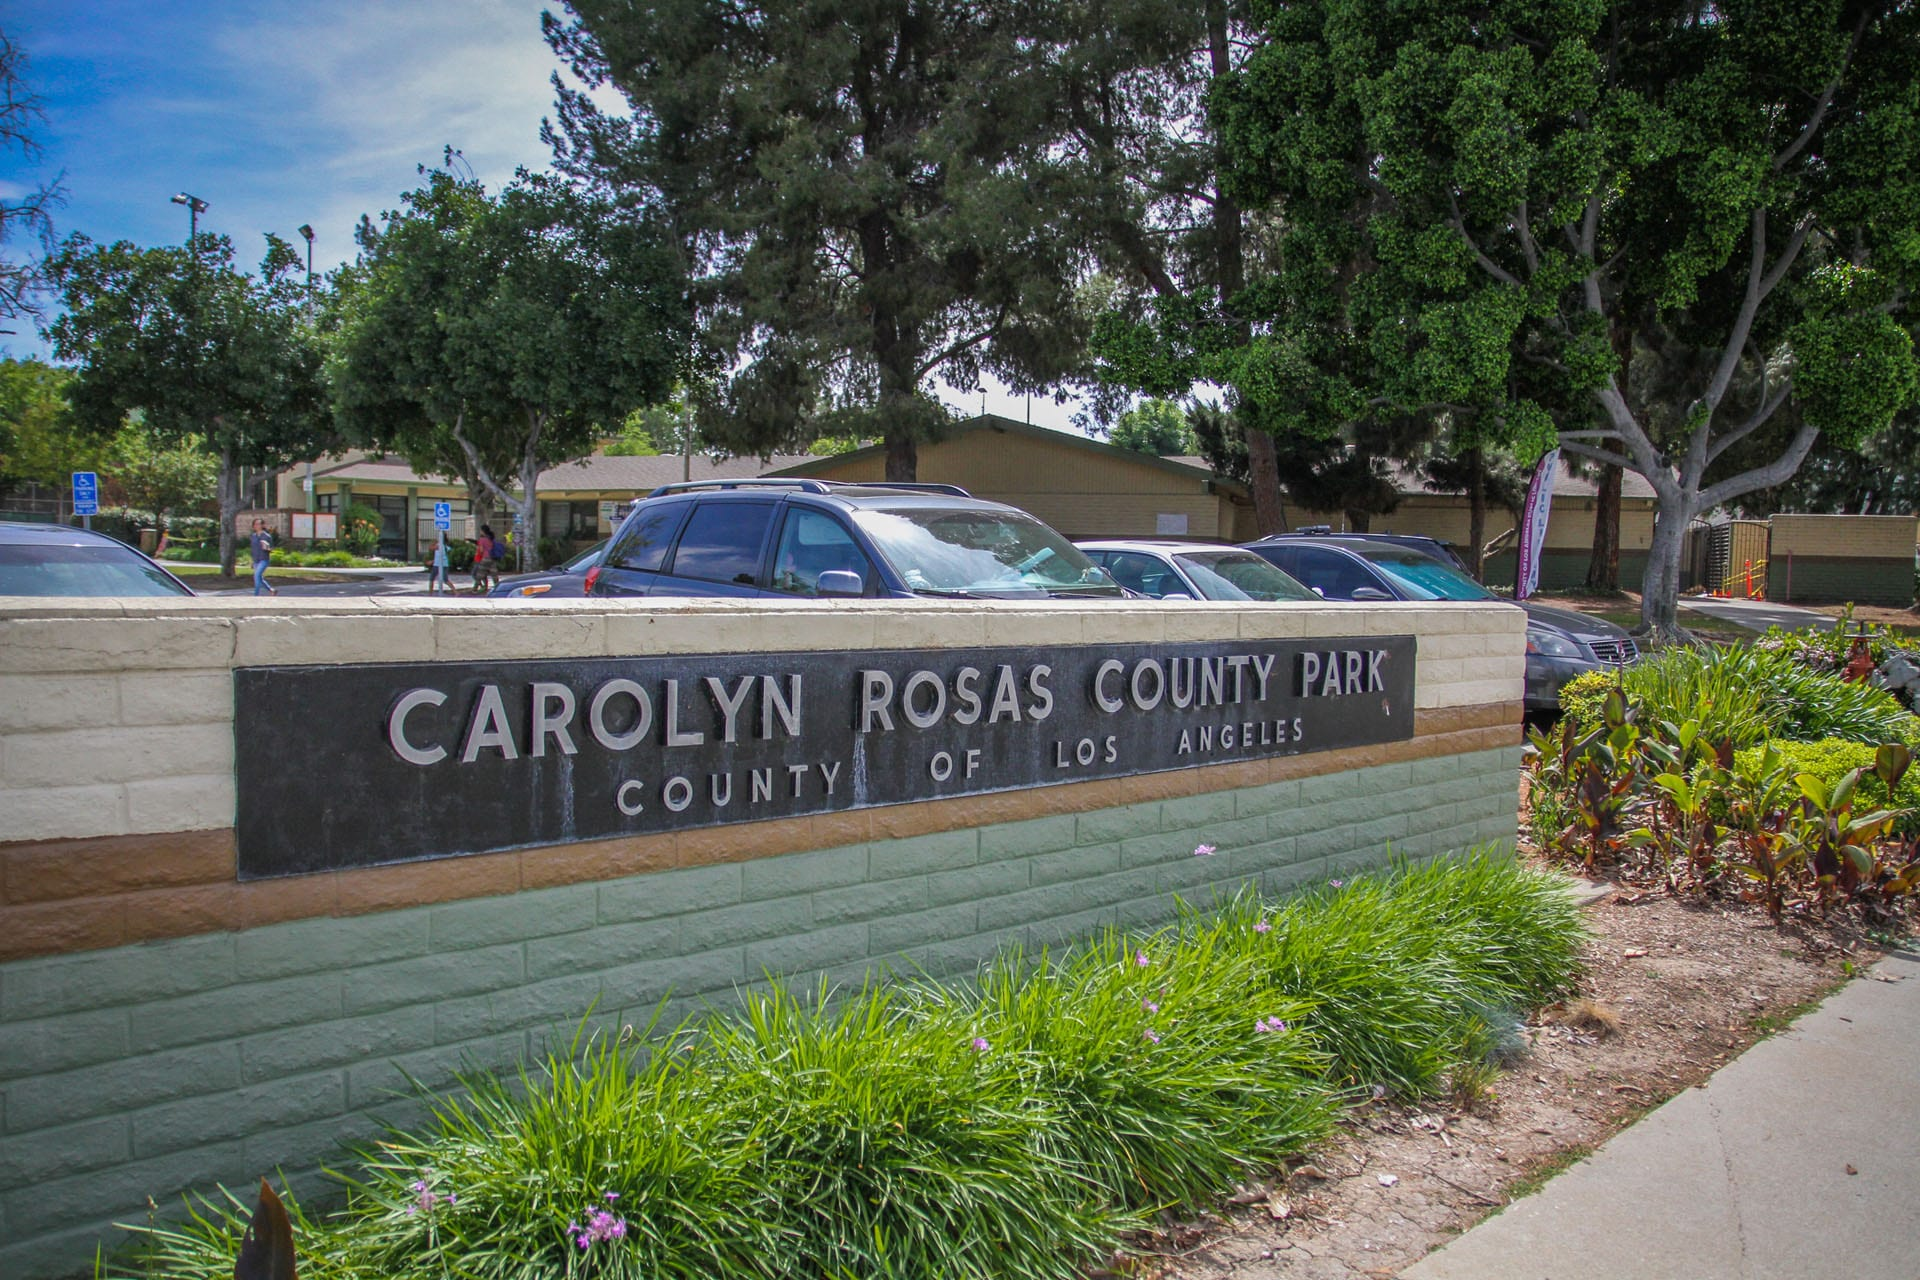 Carolyn Rosas Park sign, cars parked behind